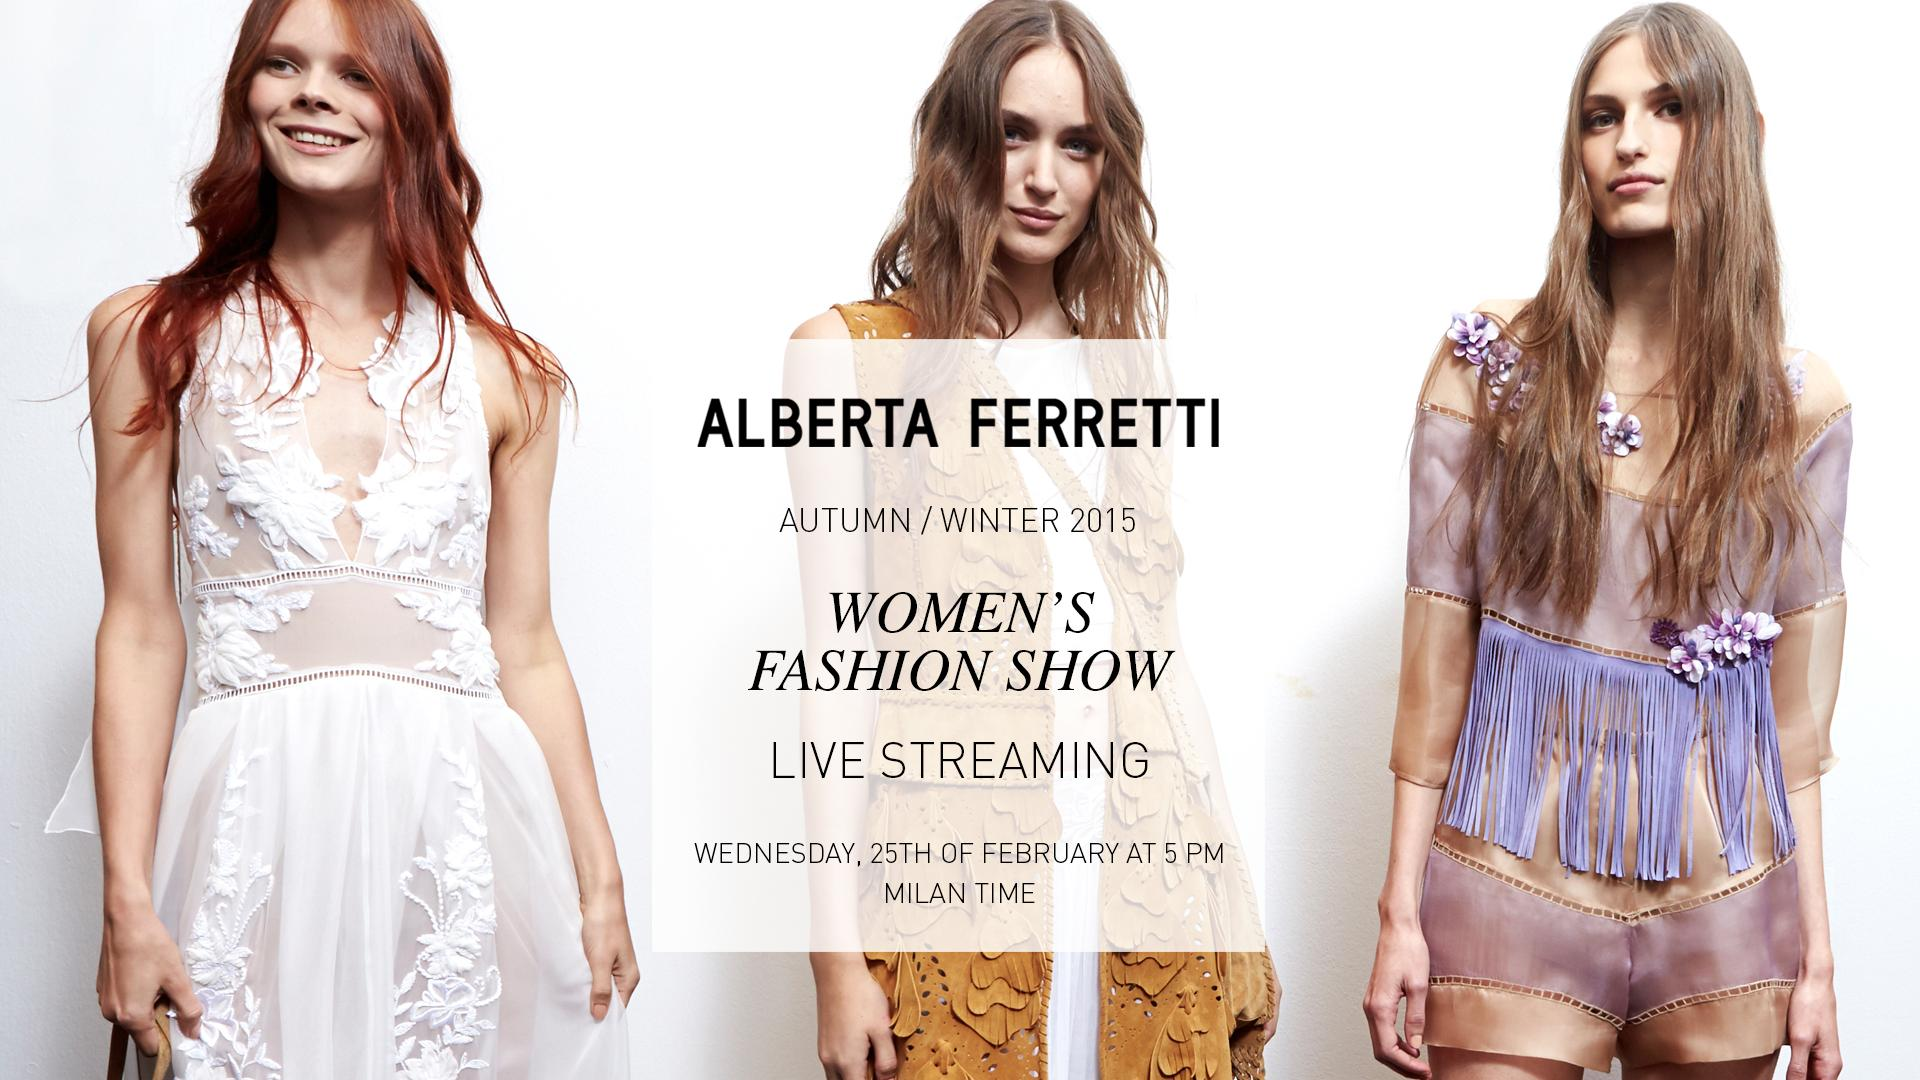 Alberta Ferretti Fall Winter 2015-16 Fashion Show Live Streaming 25th February 5pm Milan